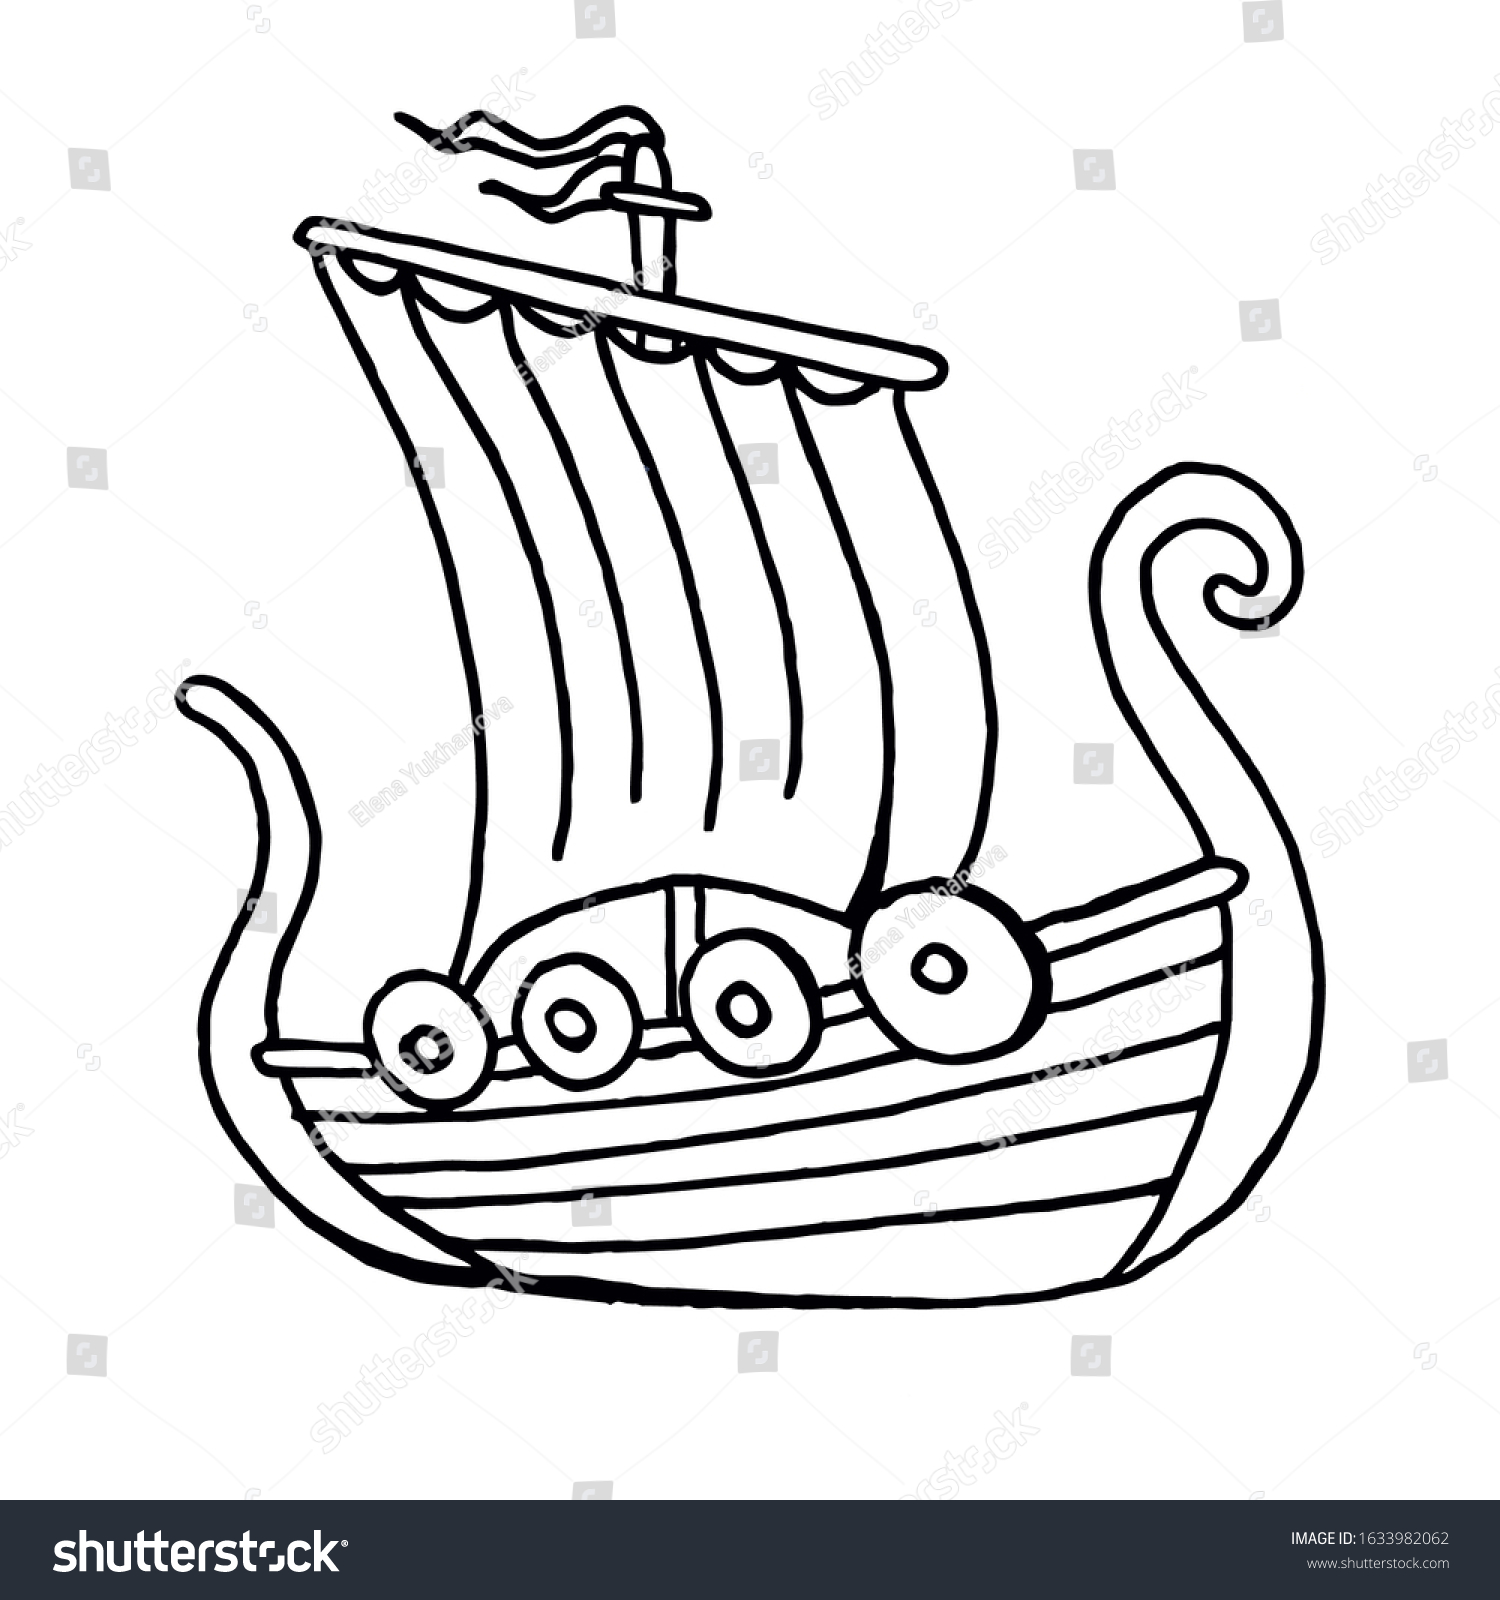 Free Printable Ships Coloring Pages For Children | Coloring pages ... | 1600x1500